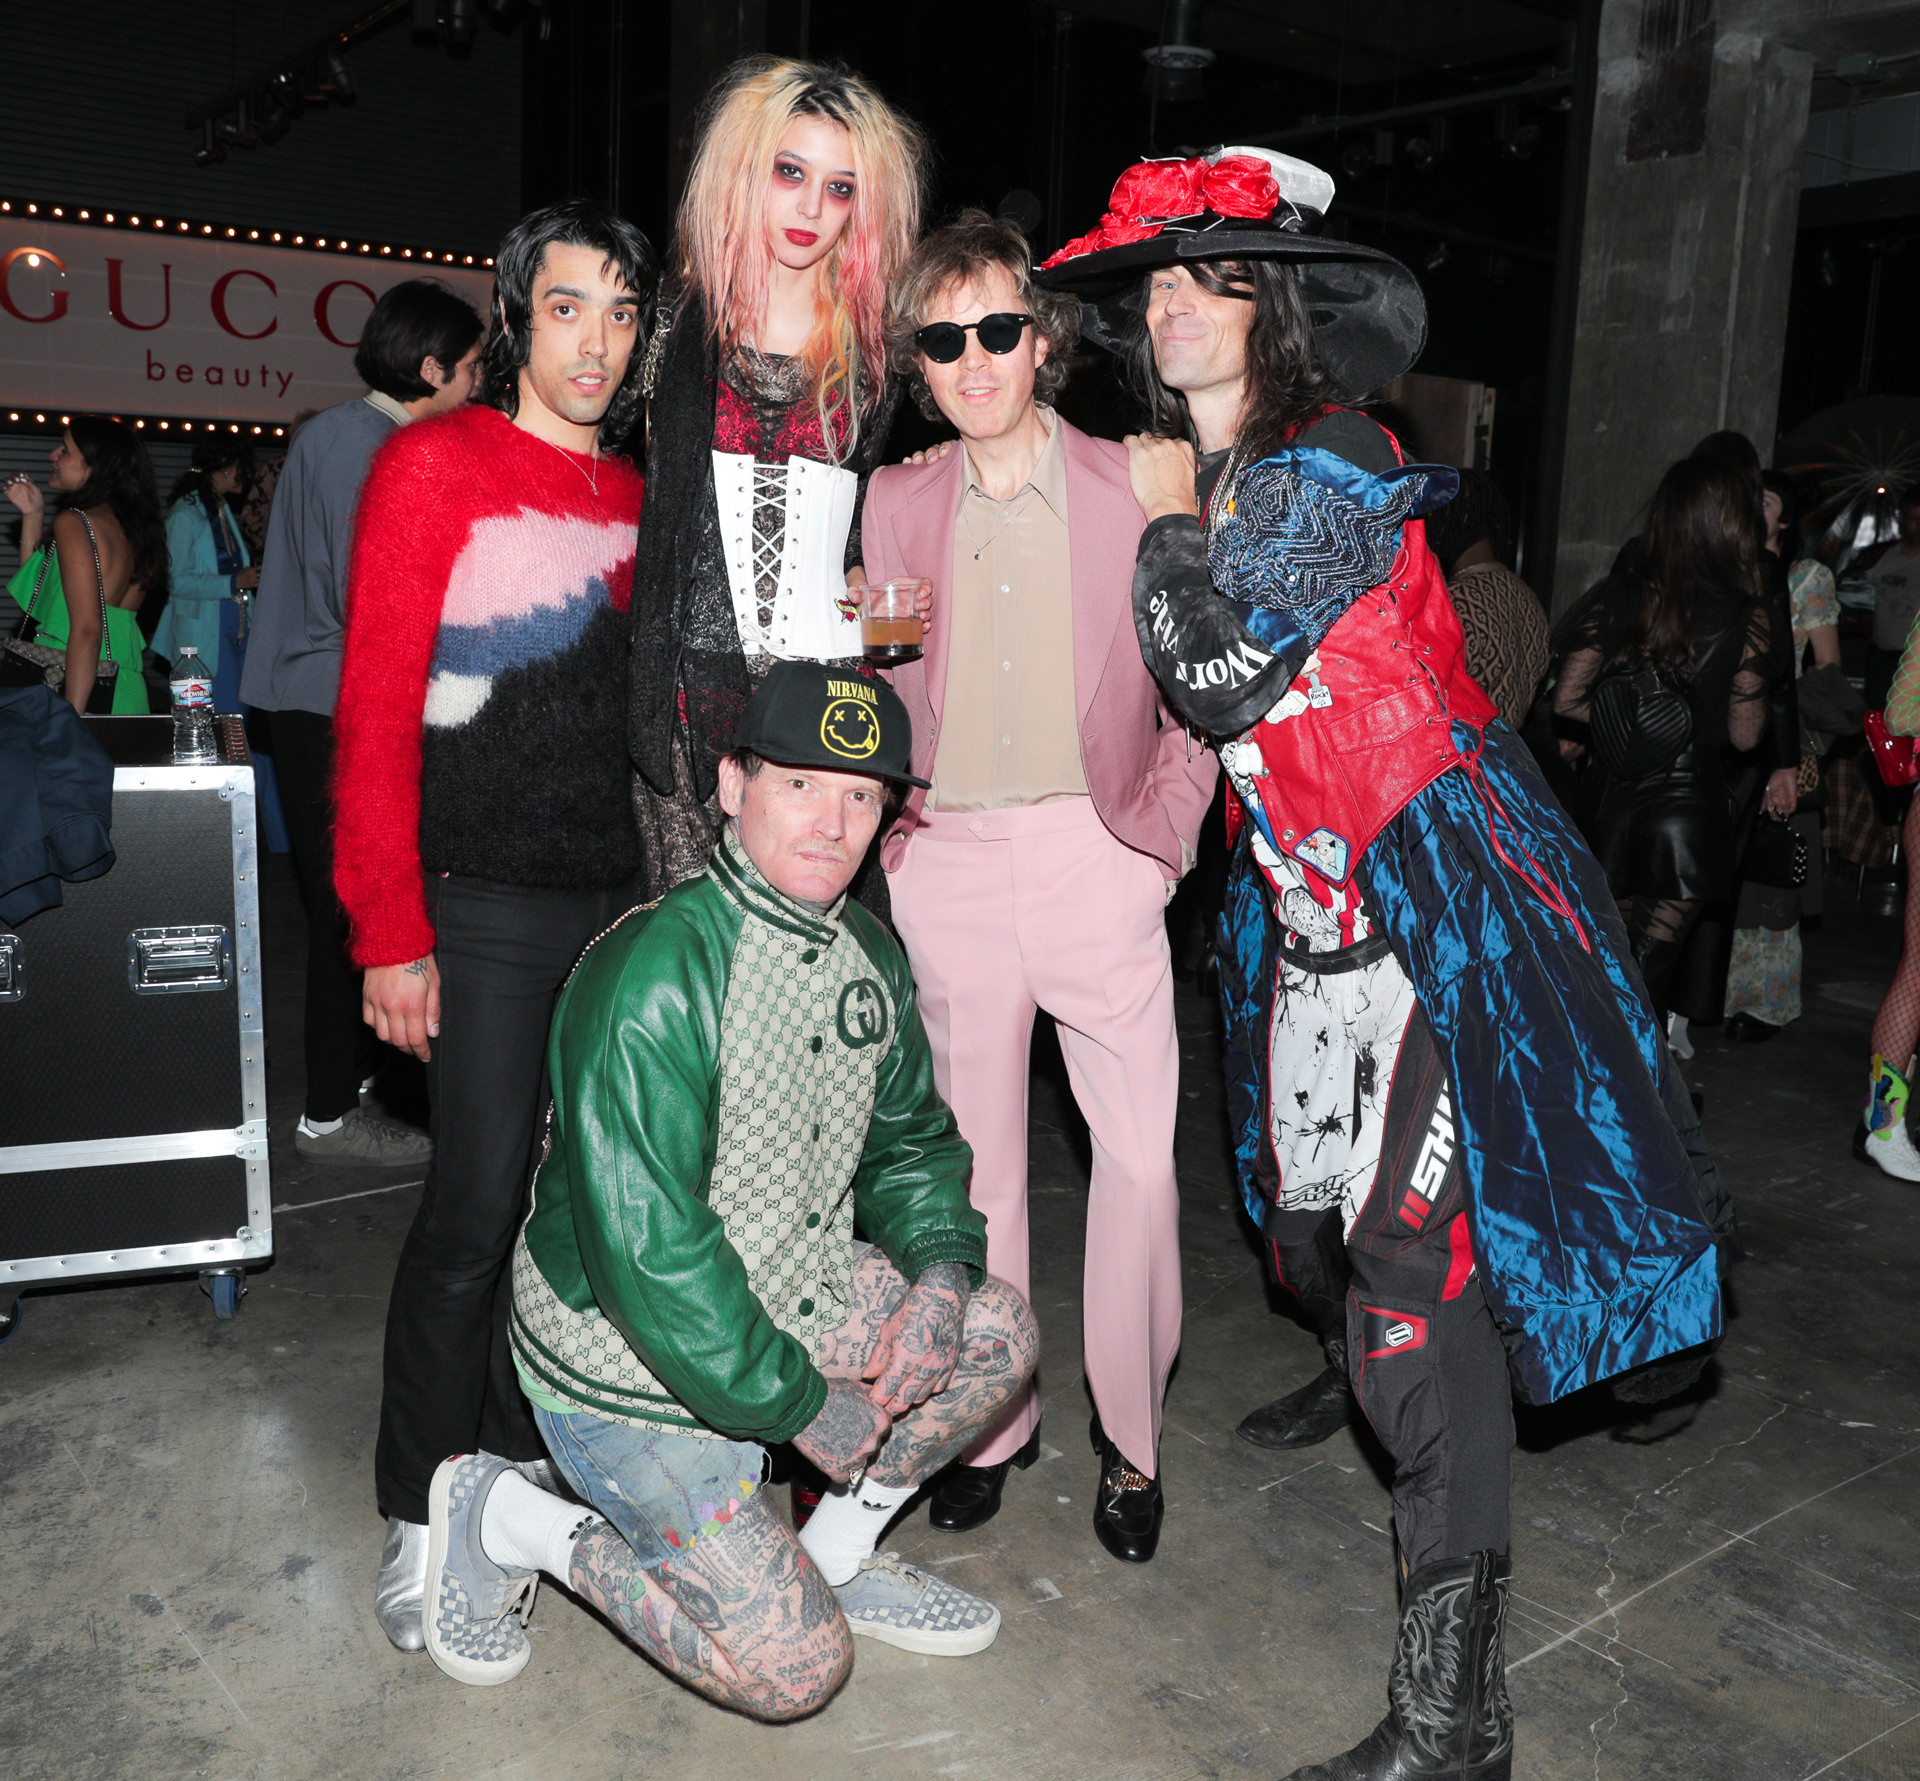 Beck and friends at Gucci launch for Mascara l'Obsur